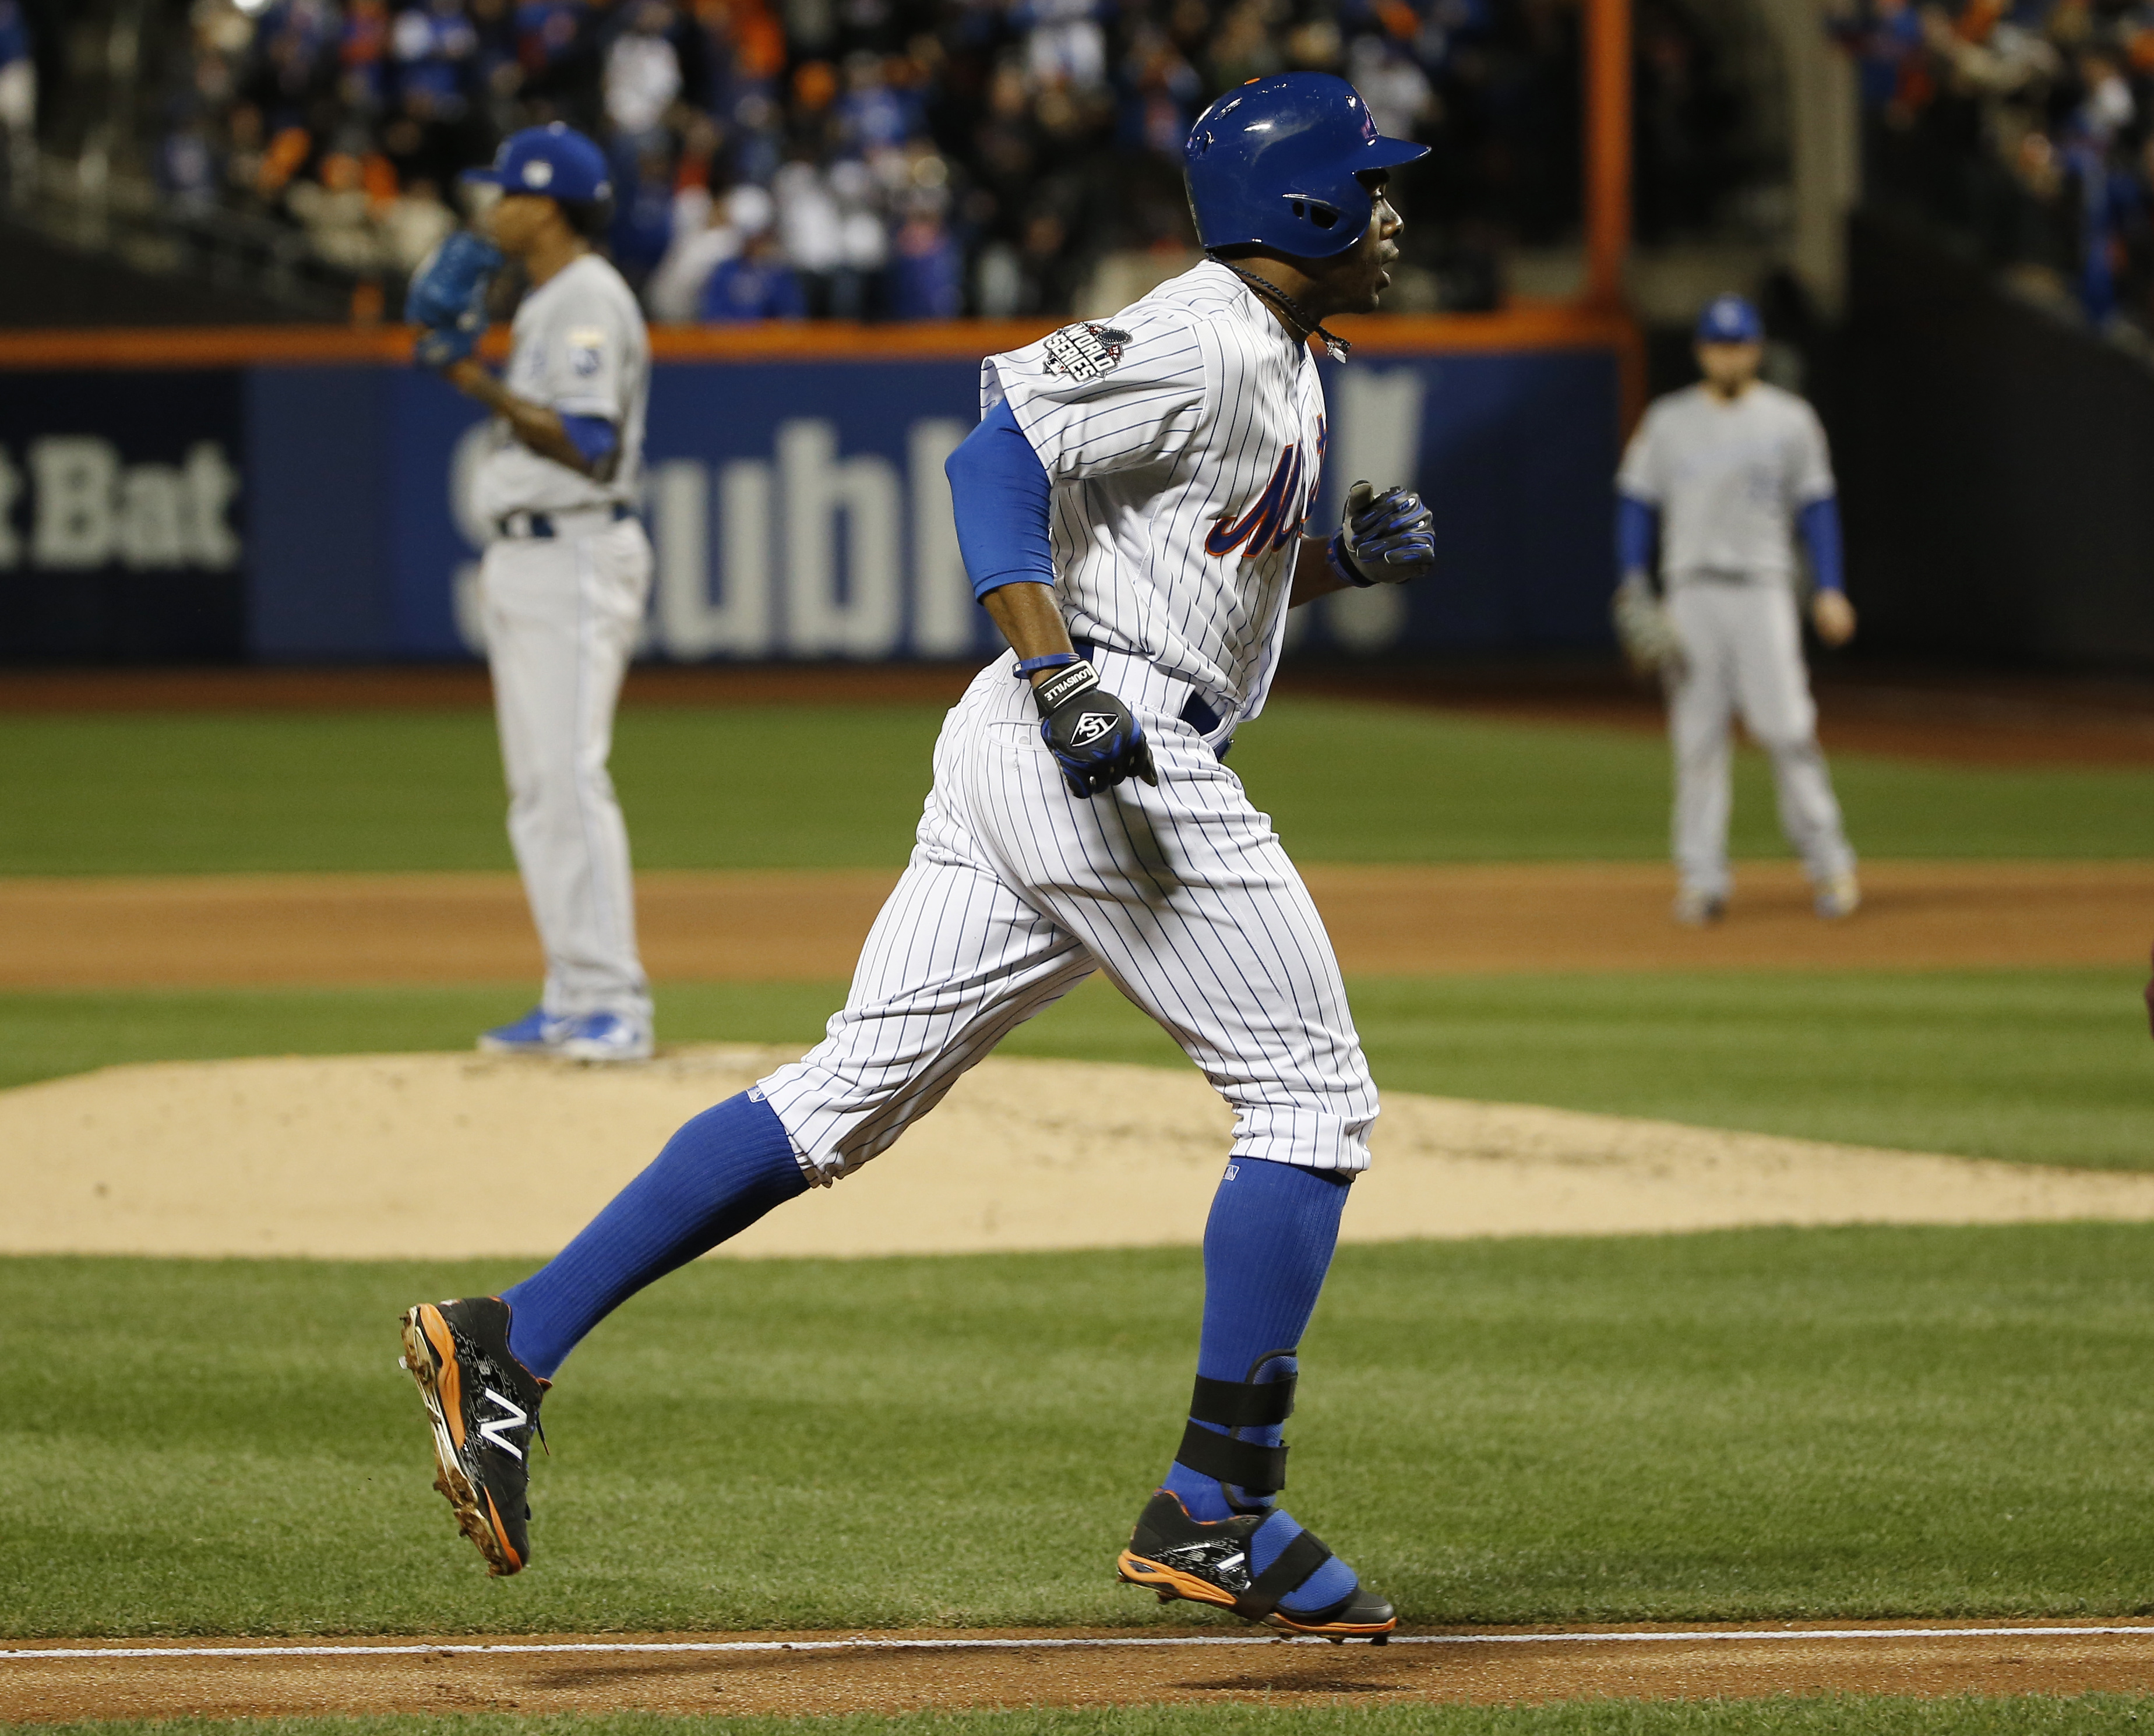 New York Mets' Curtis Granderson runs past Kansas City Royals pitcher Yordano Ventura after hitting a two run home run during the third inning of Game 3 of the Major League Baseball World Series Friday, Oct. 30, 2015, in New York. (AP Photo/Matt Slocum)